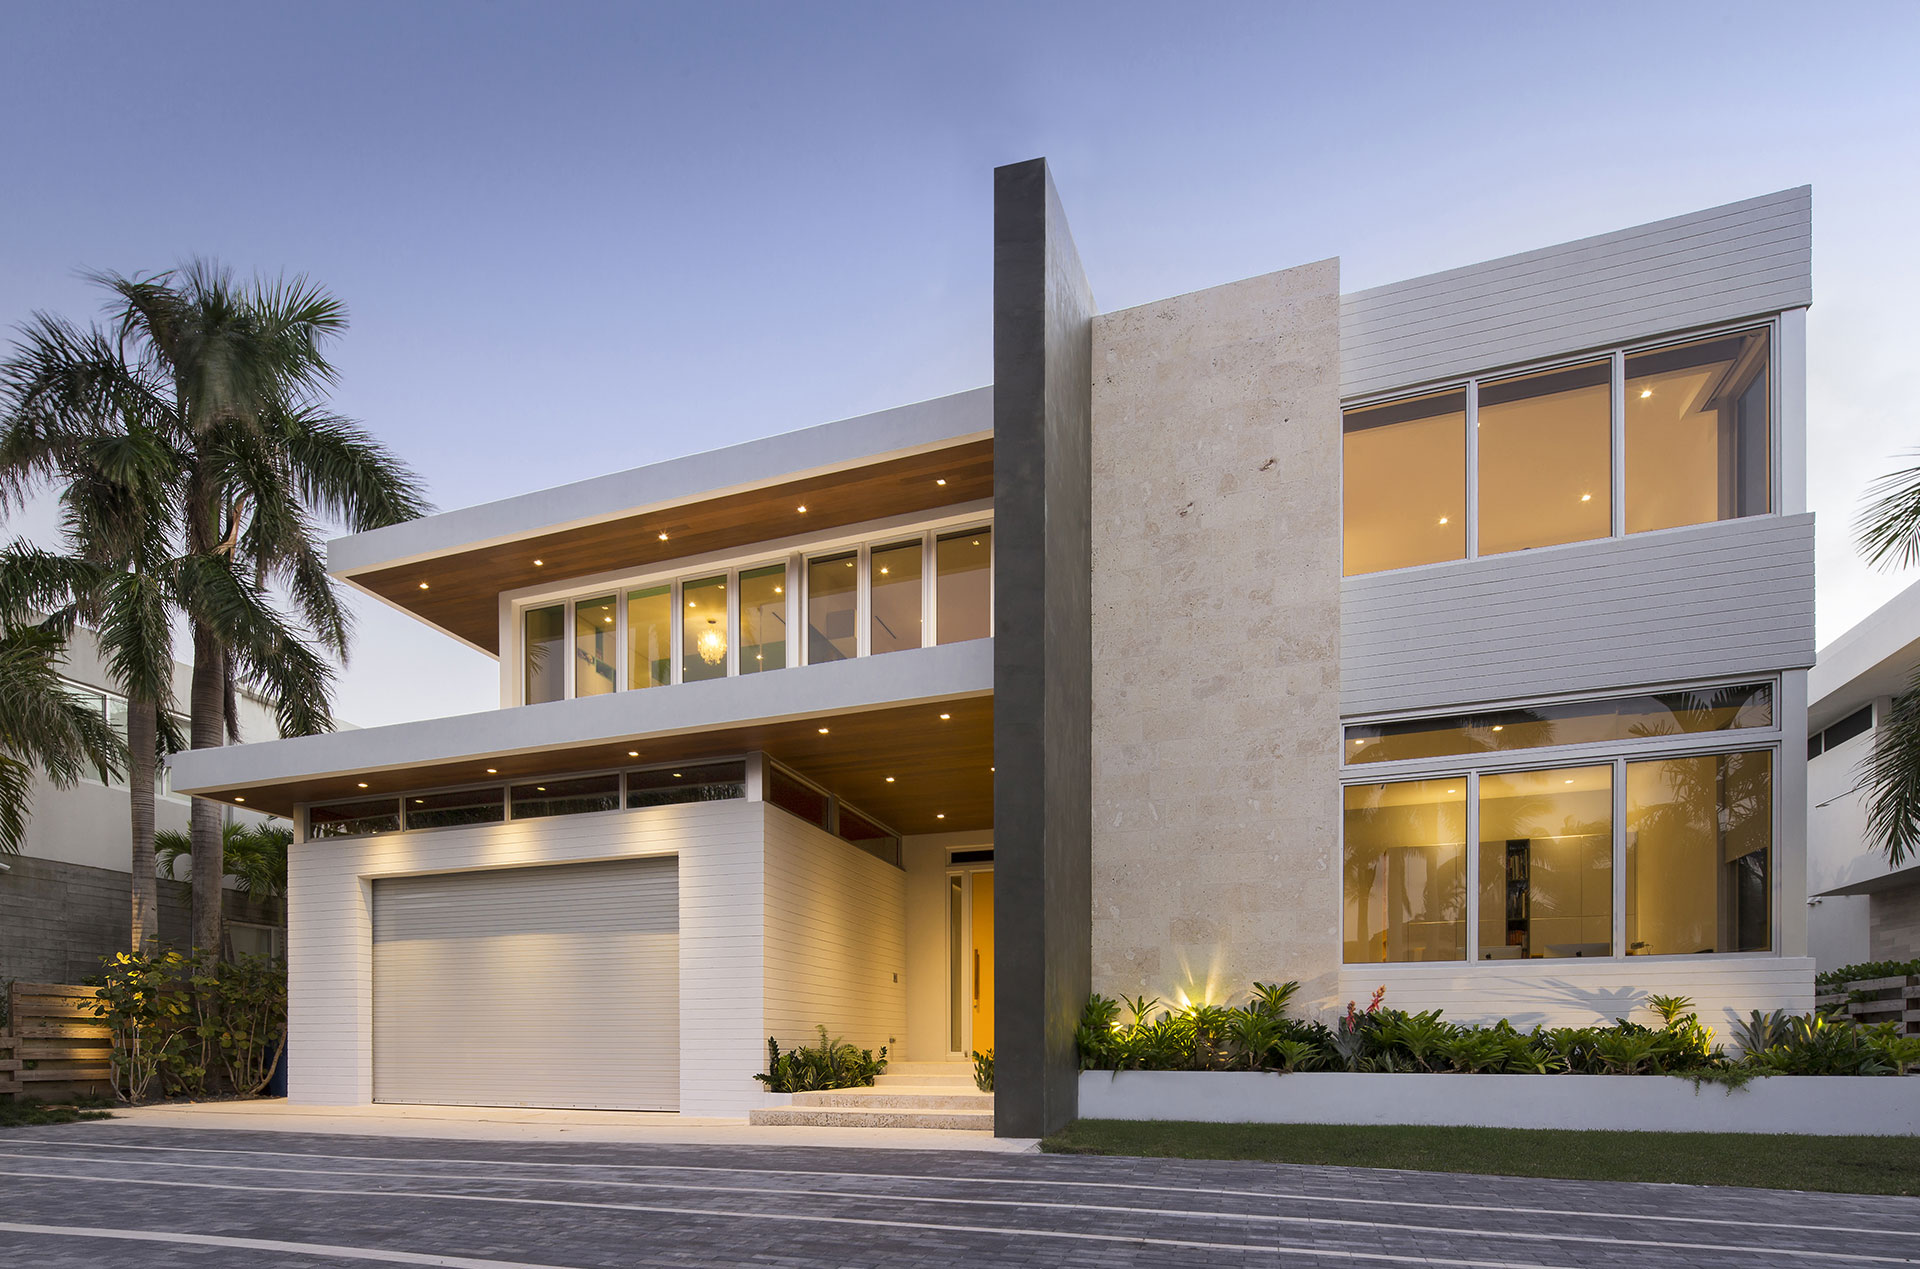 Architecture project in 484 North Parkway, Florida